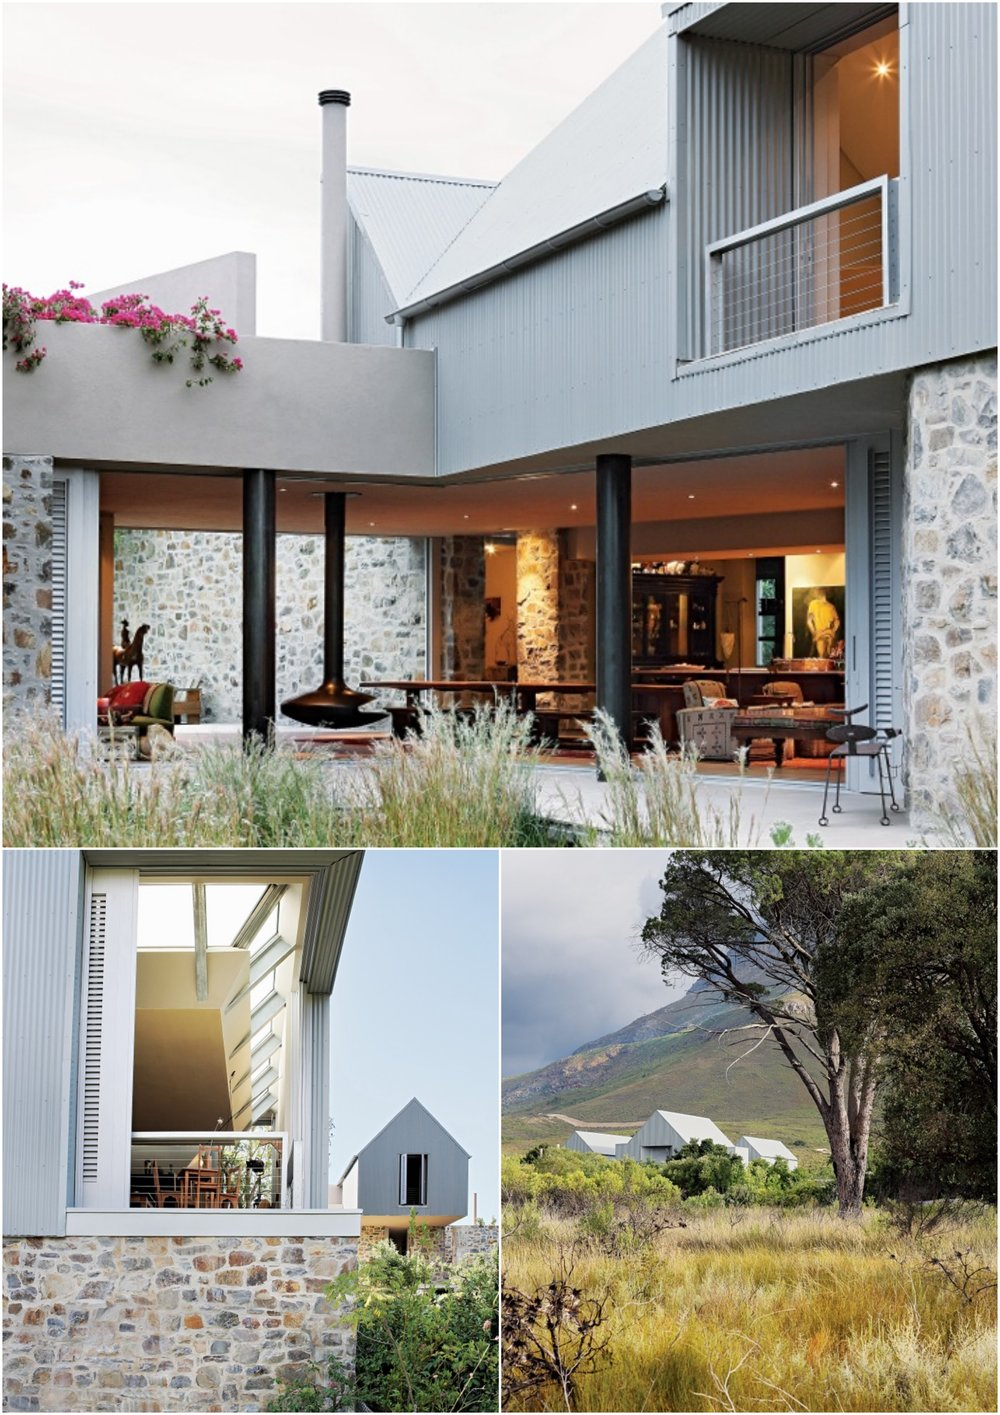 Sinkhuis is a new residence for Johann Slee and his family, situated just outside the historic core of Stellenbosch. The site itself is on the cusp of a low hill, between the Jan Marias Nature Reserve and the Eerste Rivier Valley. The dream was to create a plaasdorpshuis,in a similar spirit to the many simple and direct structures of its kind to be found on farms all over the country. The simplicity of the recognisable profile of the house belies the complexity of the geometry within the sheds. The views from the terraces stretch towards the north and east, but maybe the most surprising one is from the terrace on the top of Johann's studio. This is an expertly crafted and carefully designed building. It is largely motivated by the desire for a rural lifestyle and its symbolic forms.